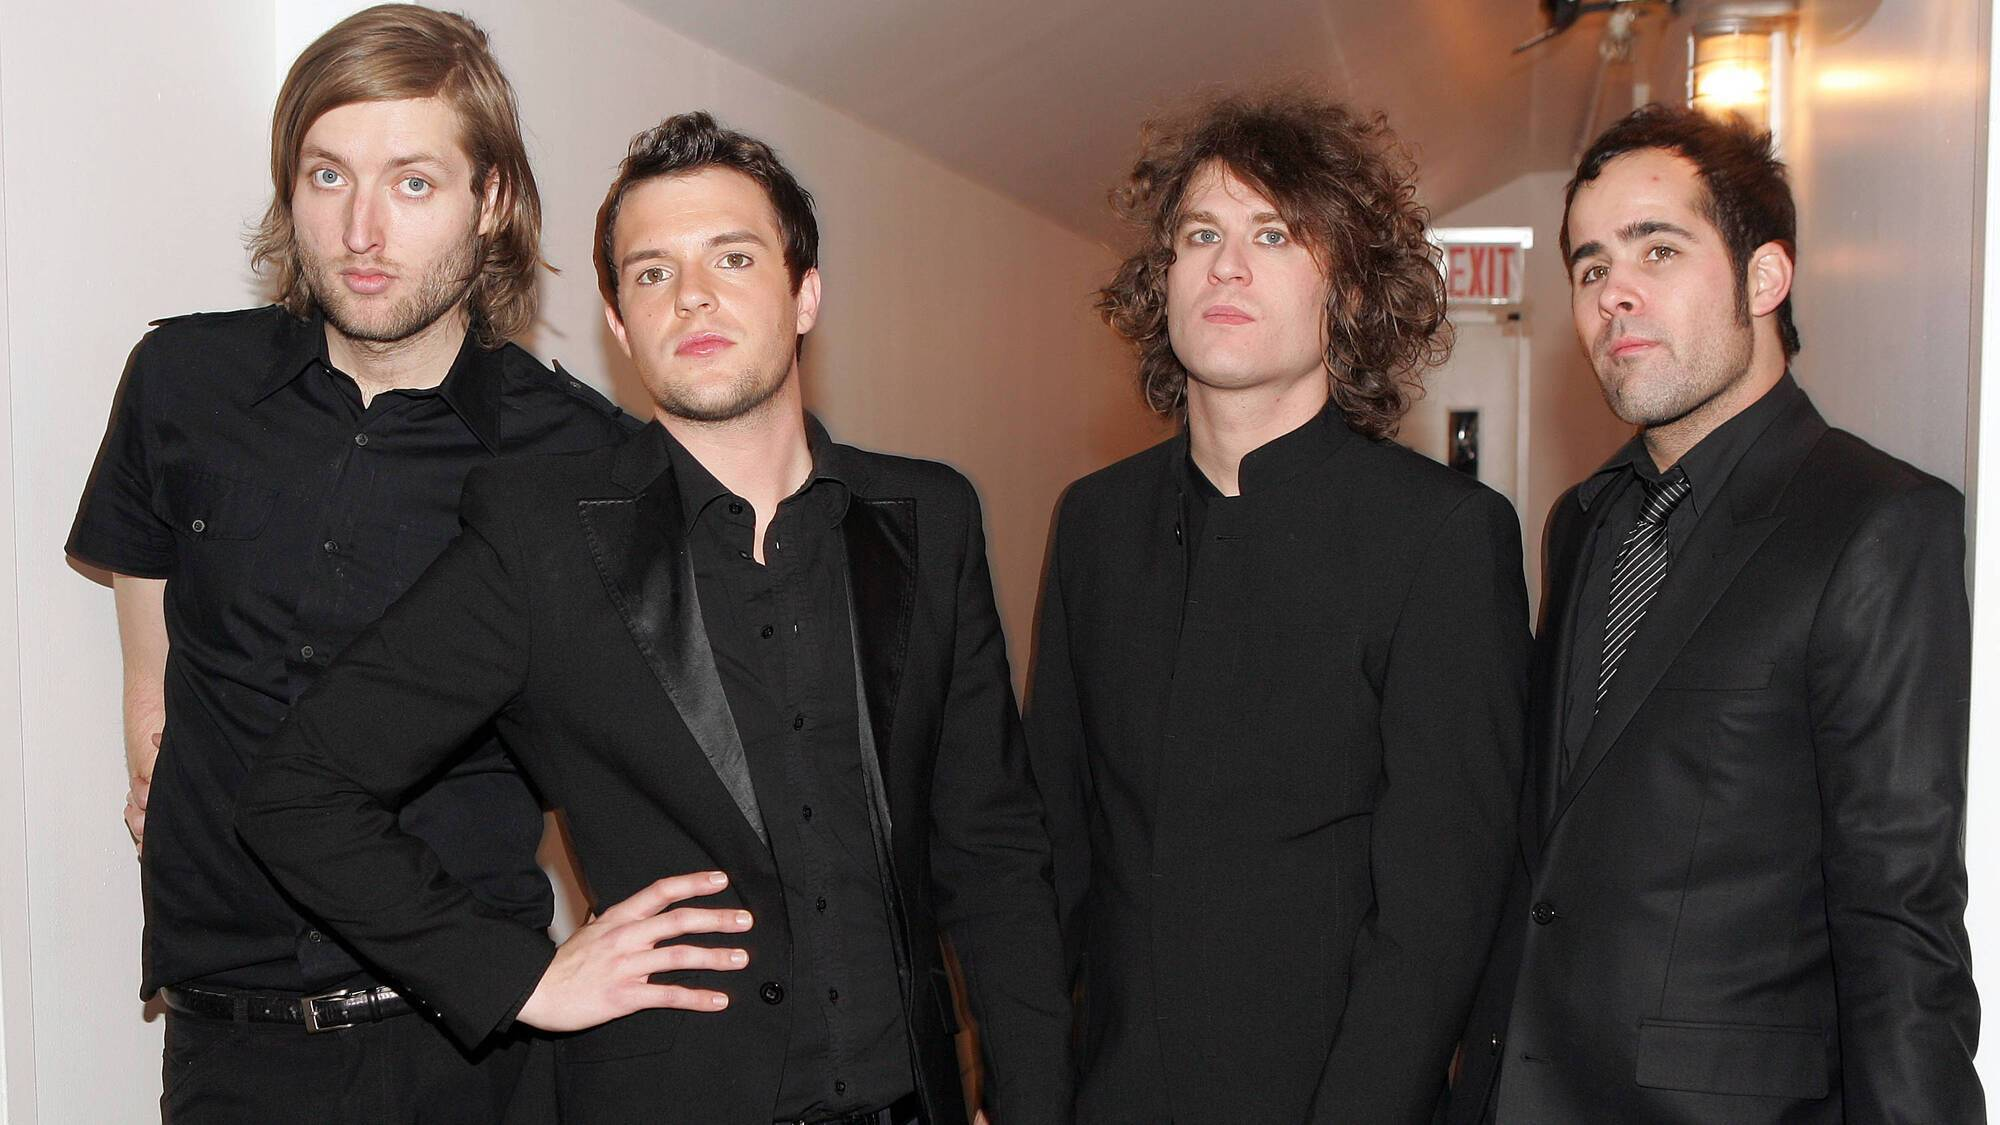 The Killers